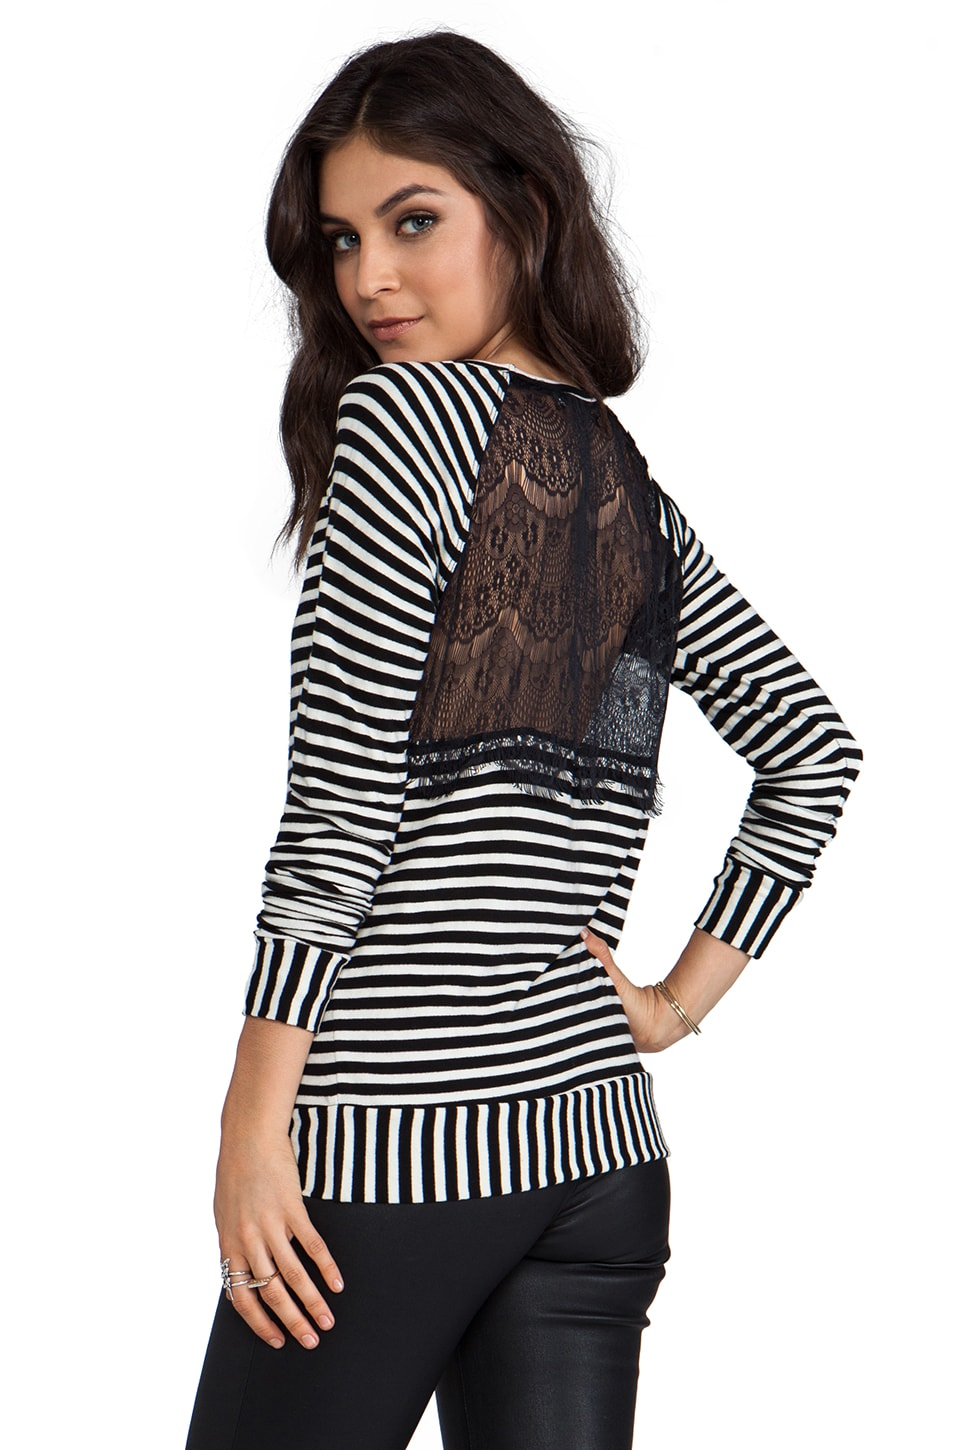 WOODLEIGH Ramona Top in Black/White Stripe